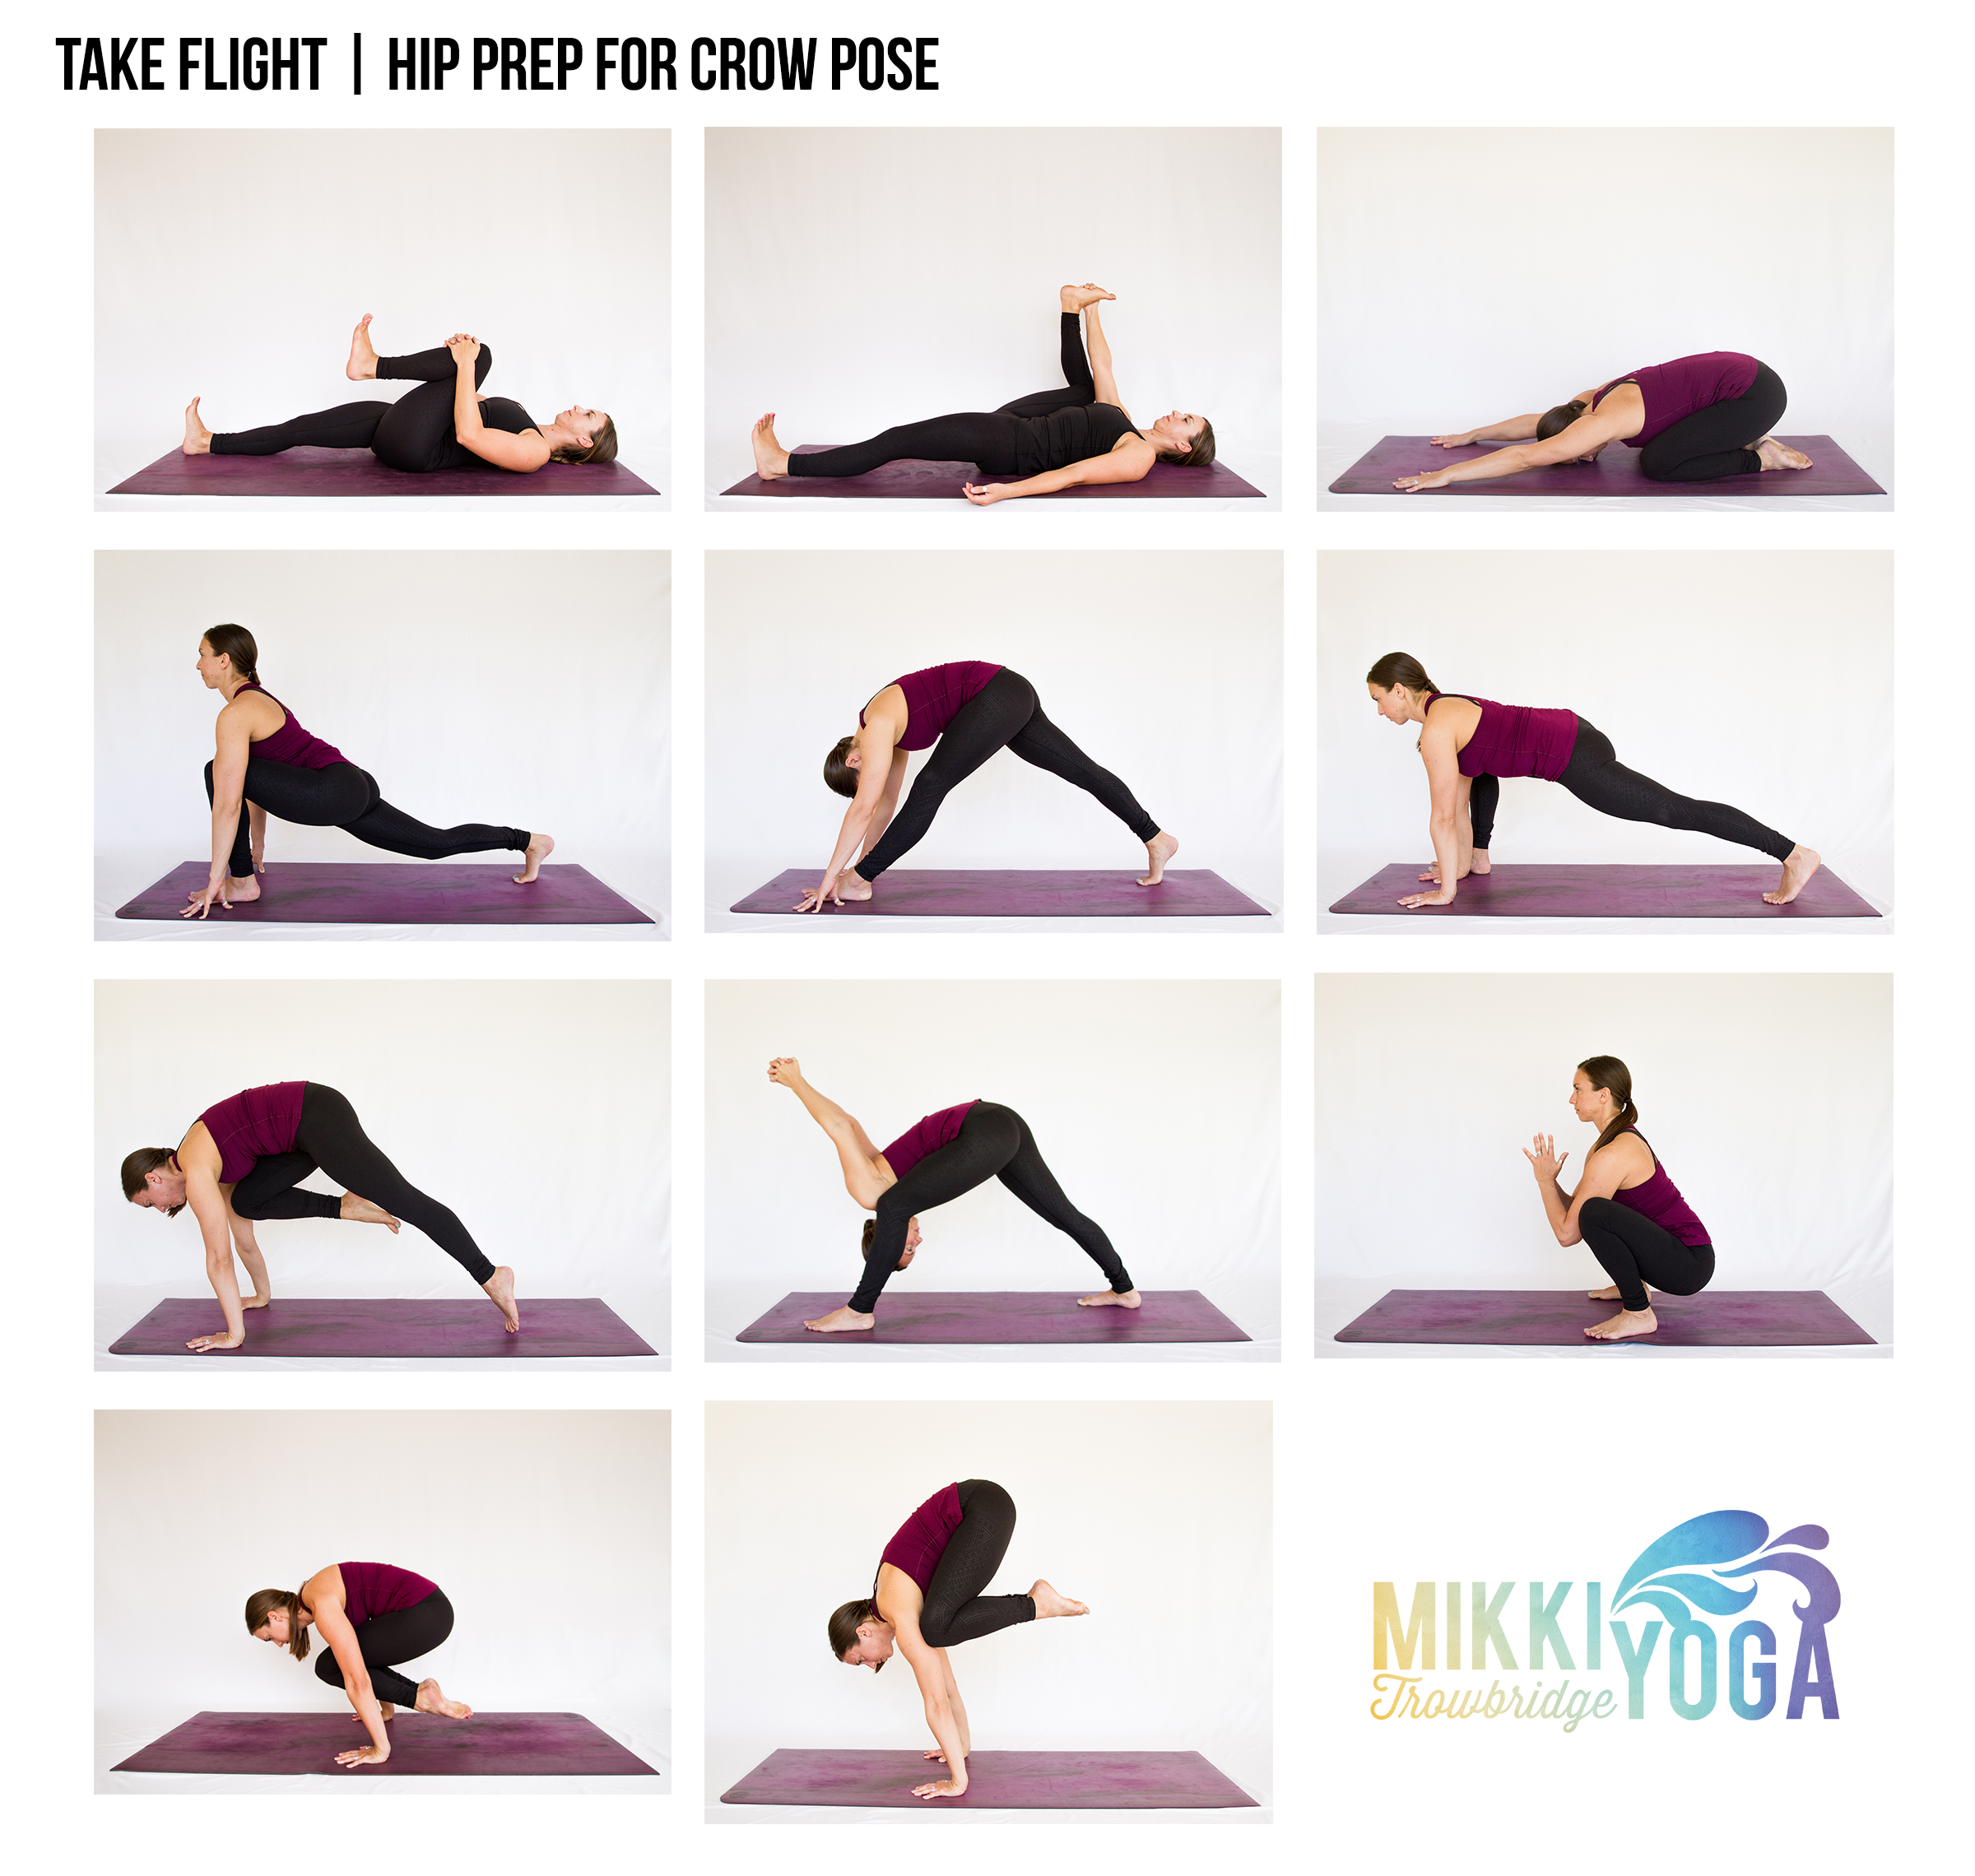 Tips For Crow Pose Yoga